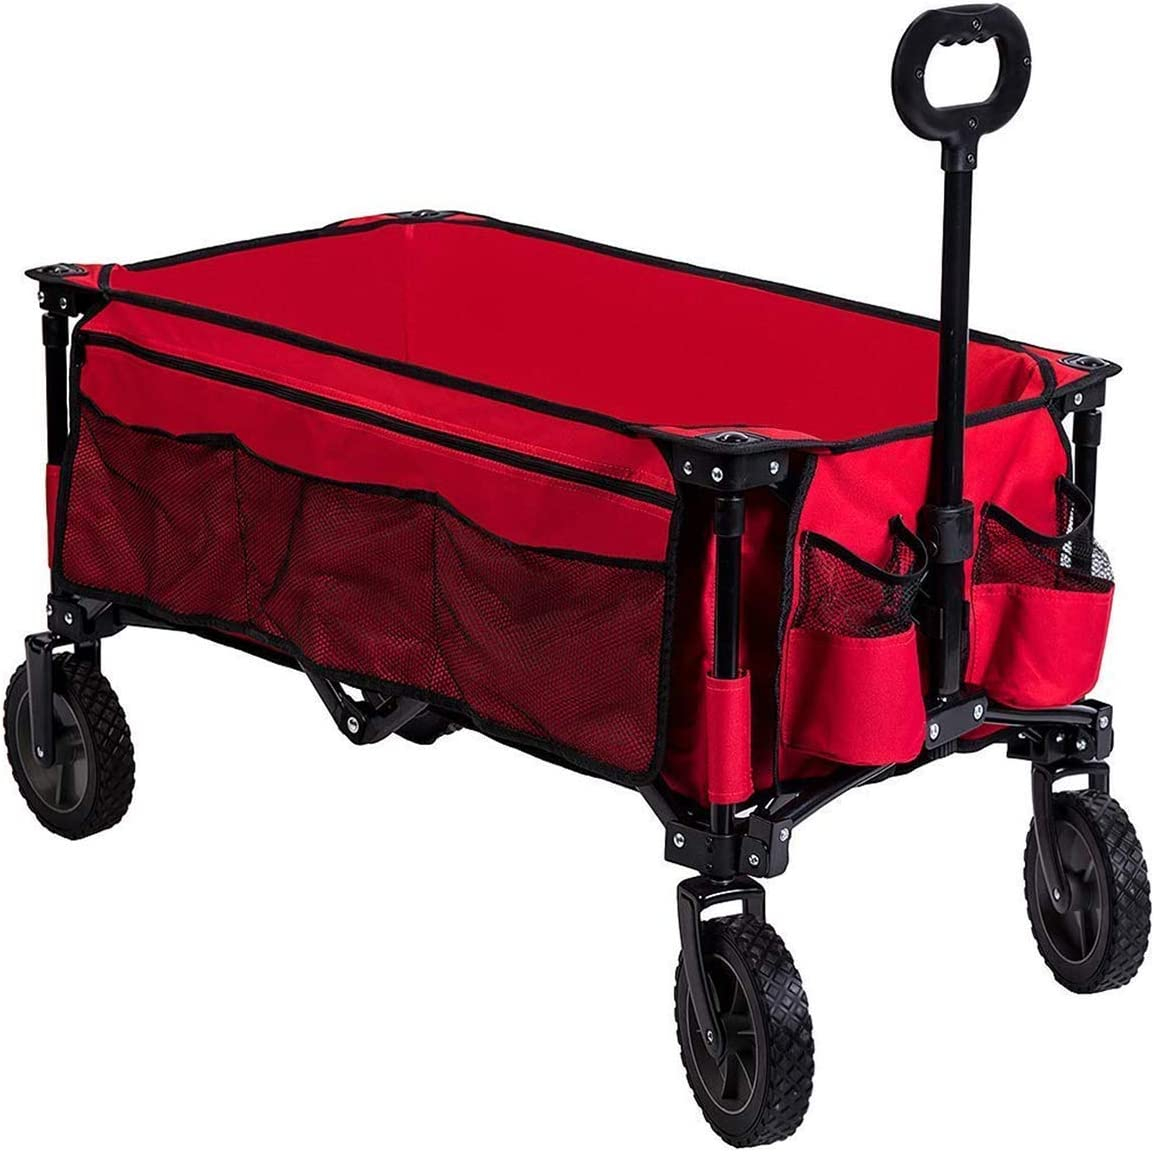 Timber Ridge Camping Wagon Folding Garden Cart Shopping Trolley Collapsible Heavy Duty Utility Use with Side Bag and Storage Bag